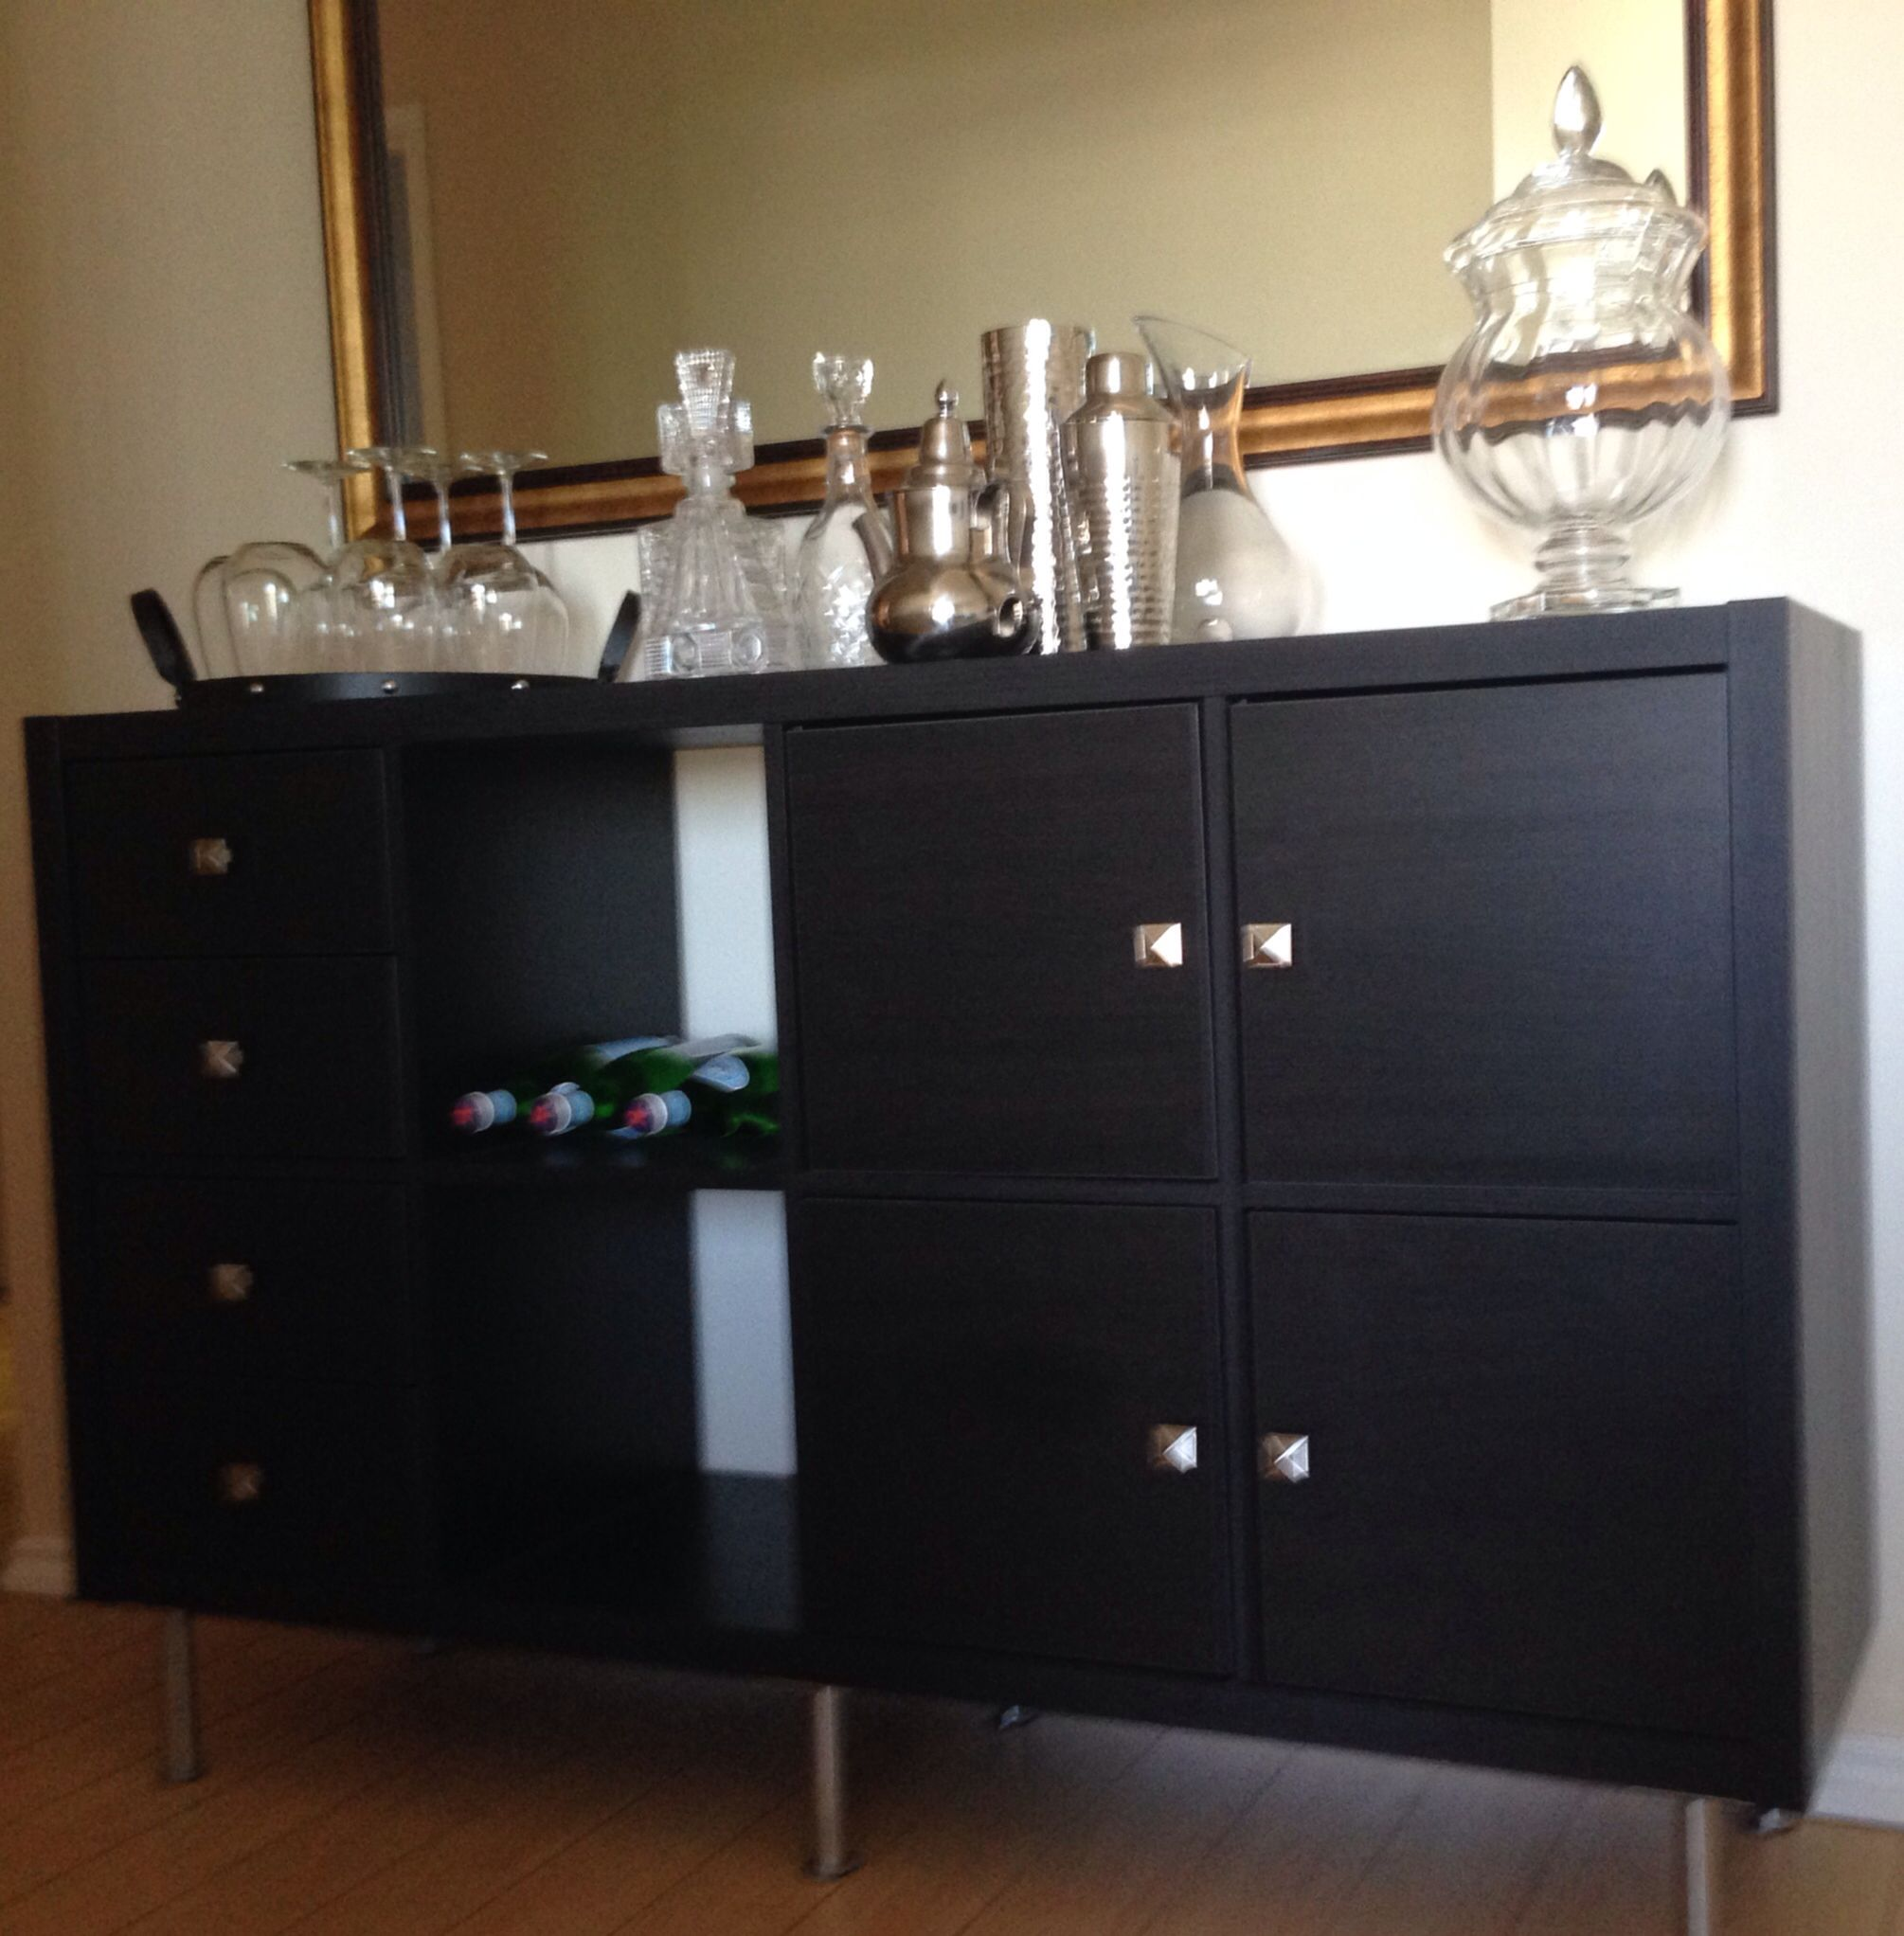 Ikea Expedit Kitchen: Image Result For Kallax Drawers